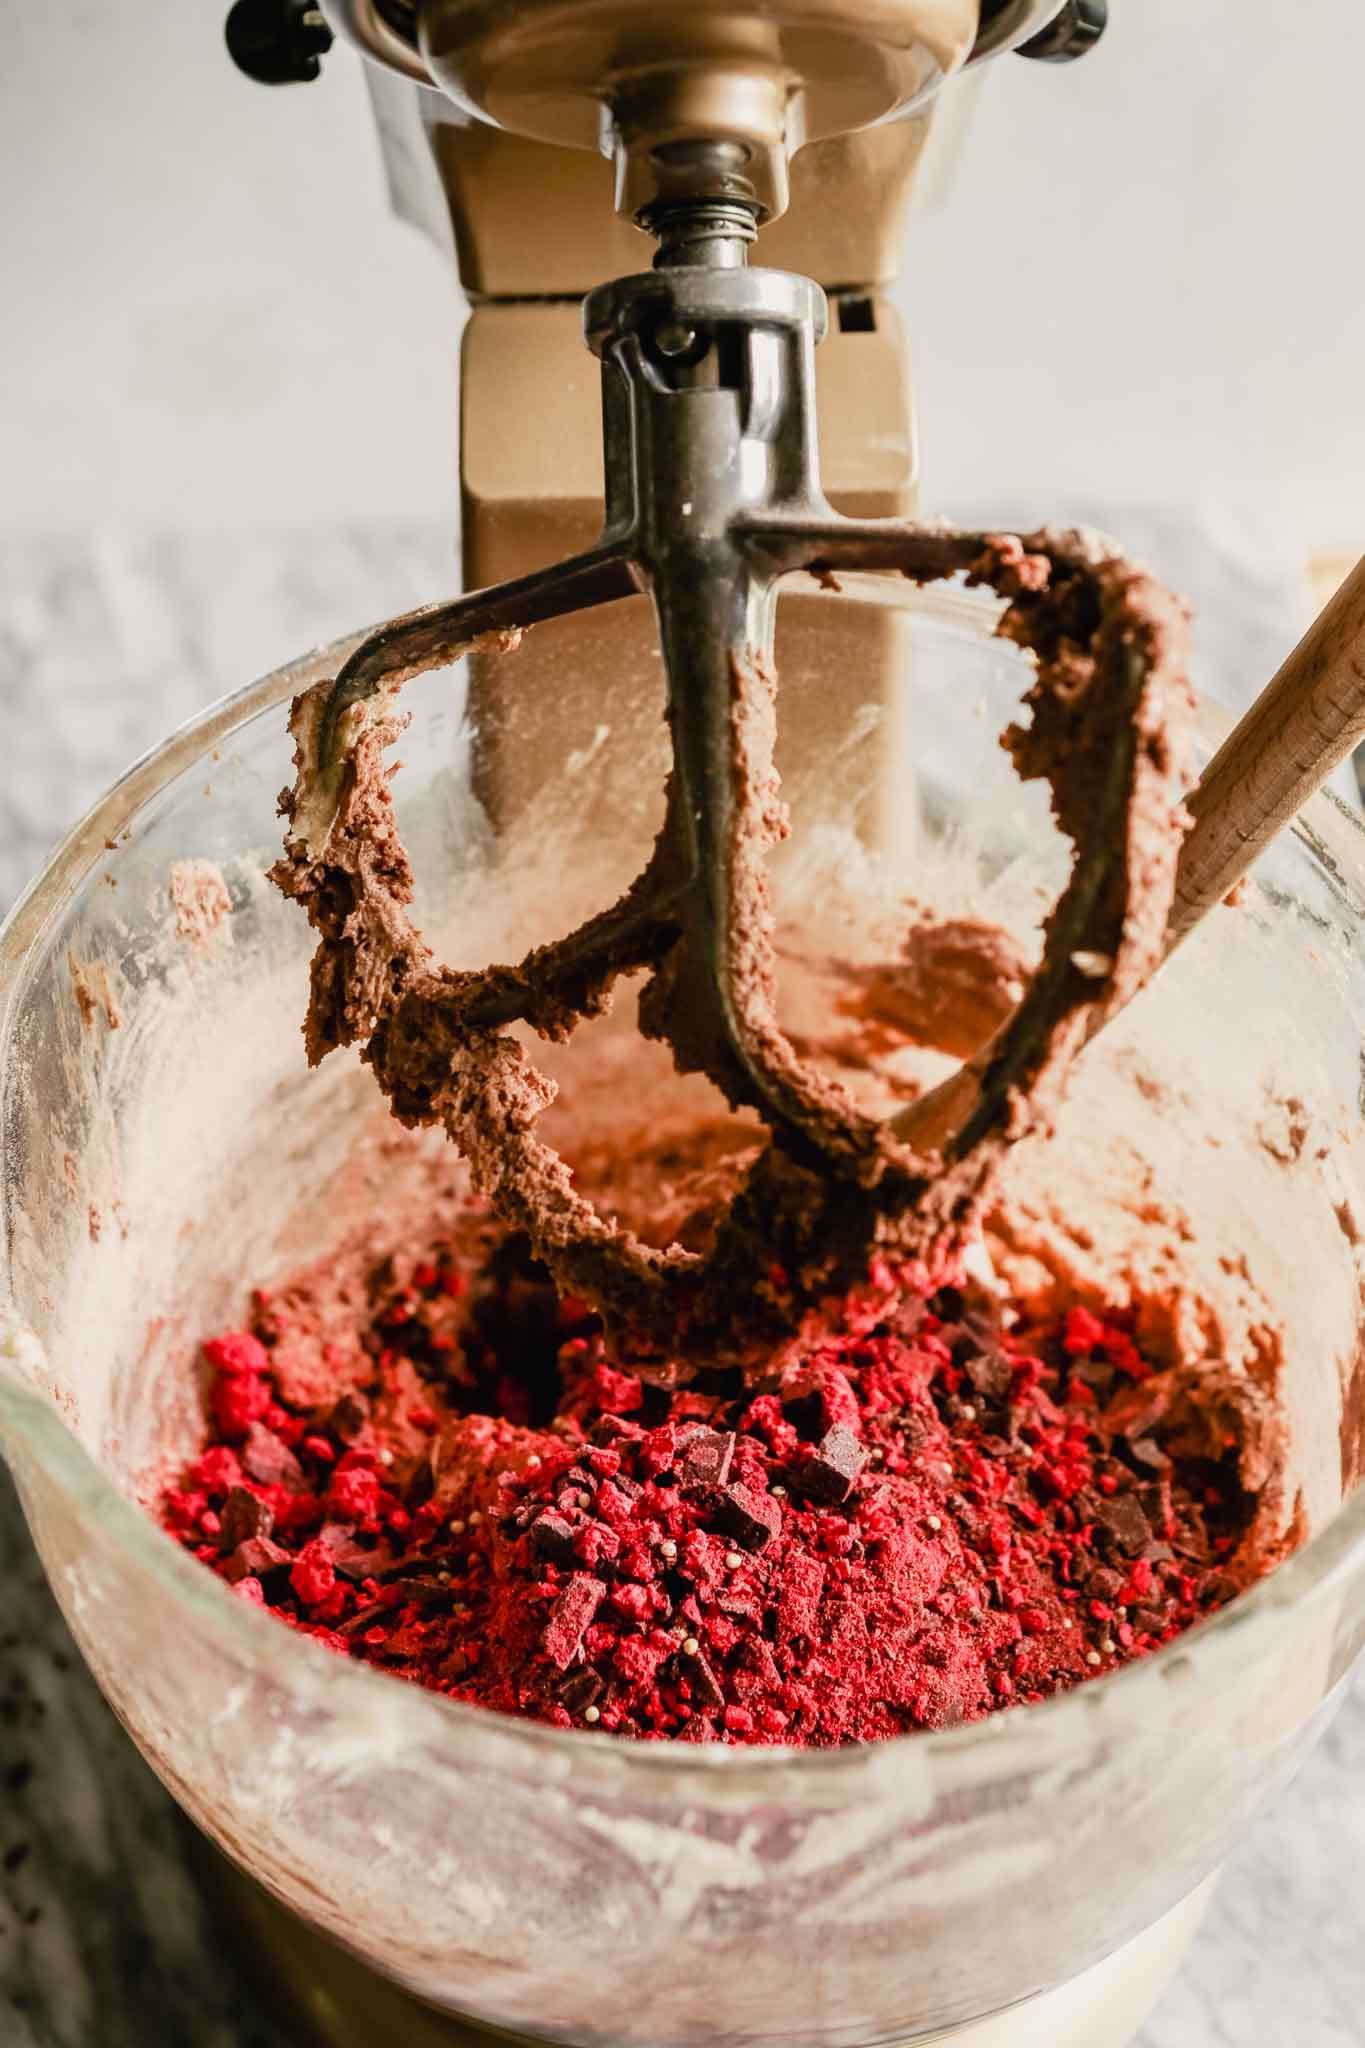 Freeze dried raspberries, millet and mexican chocolate in a mixing bowl with chocolate cookie dough